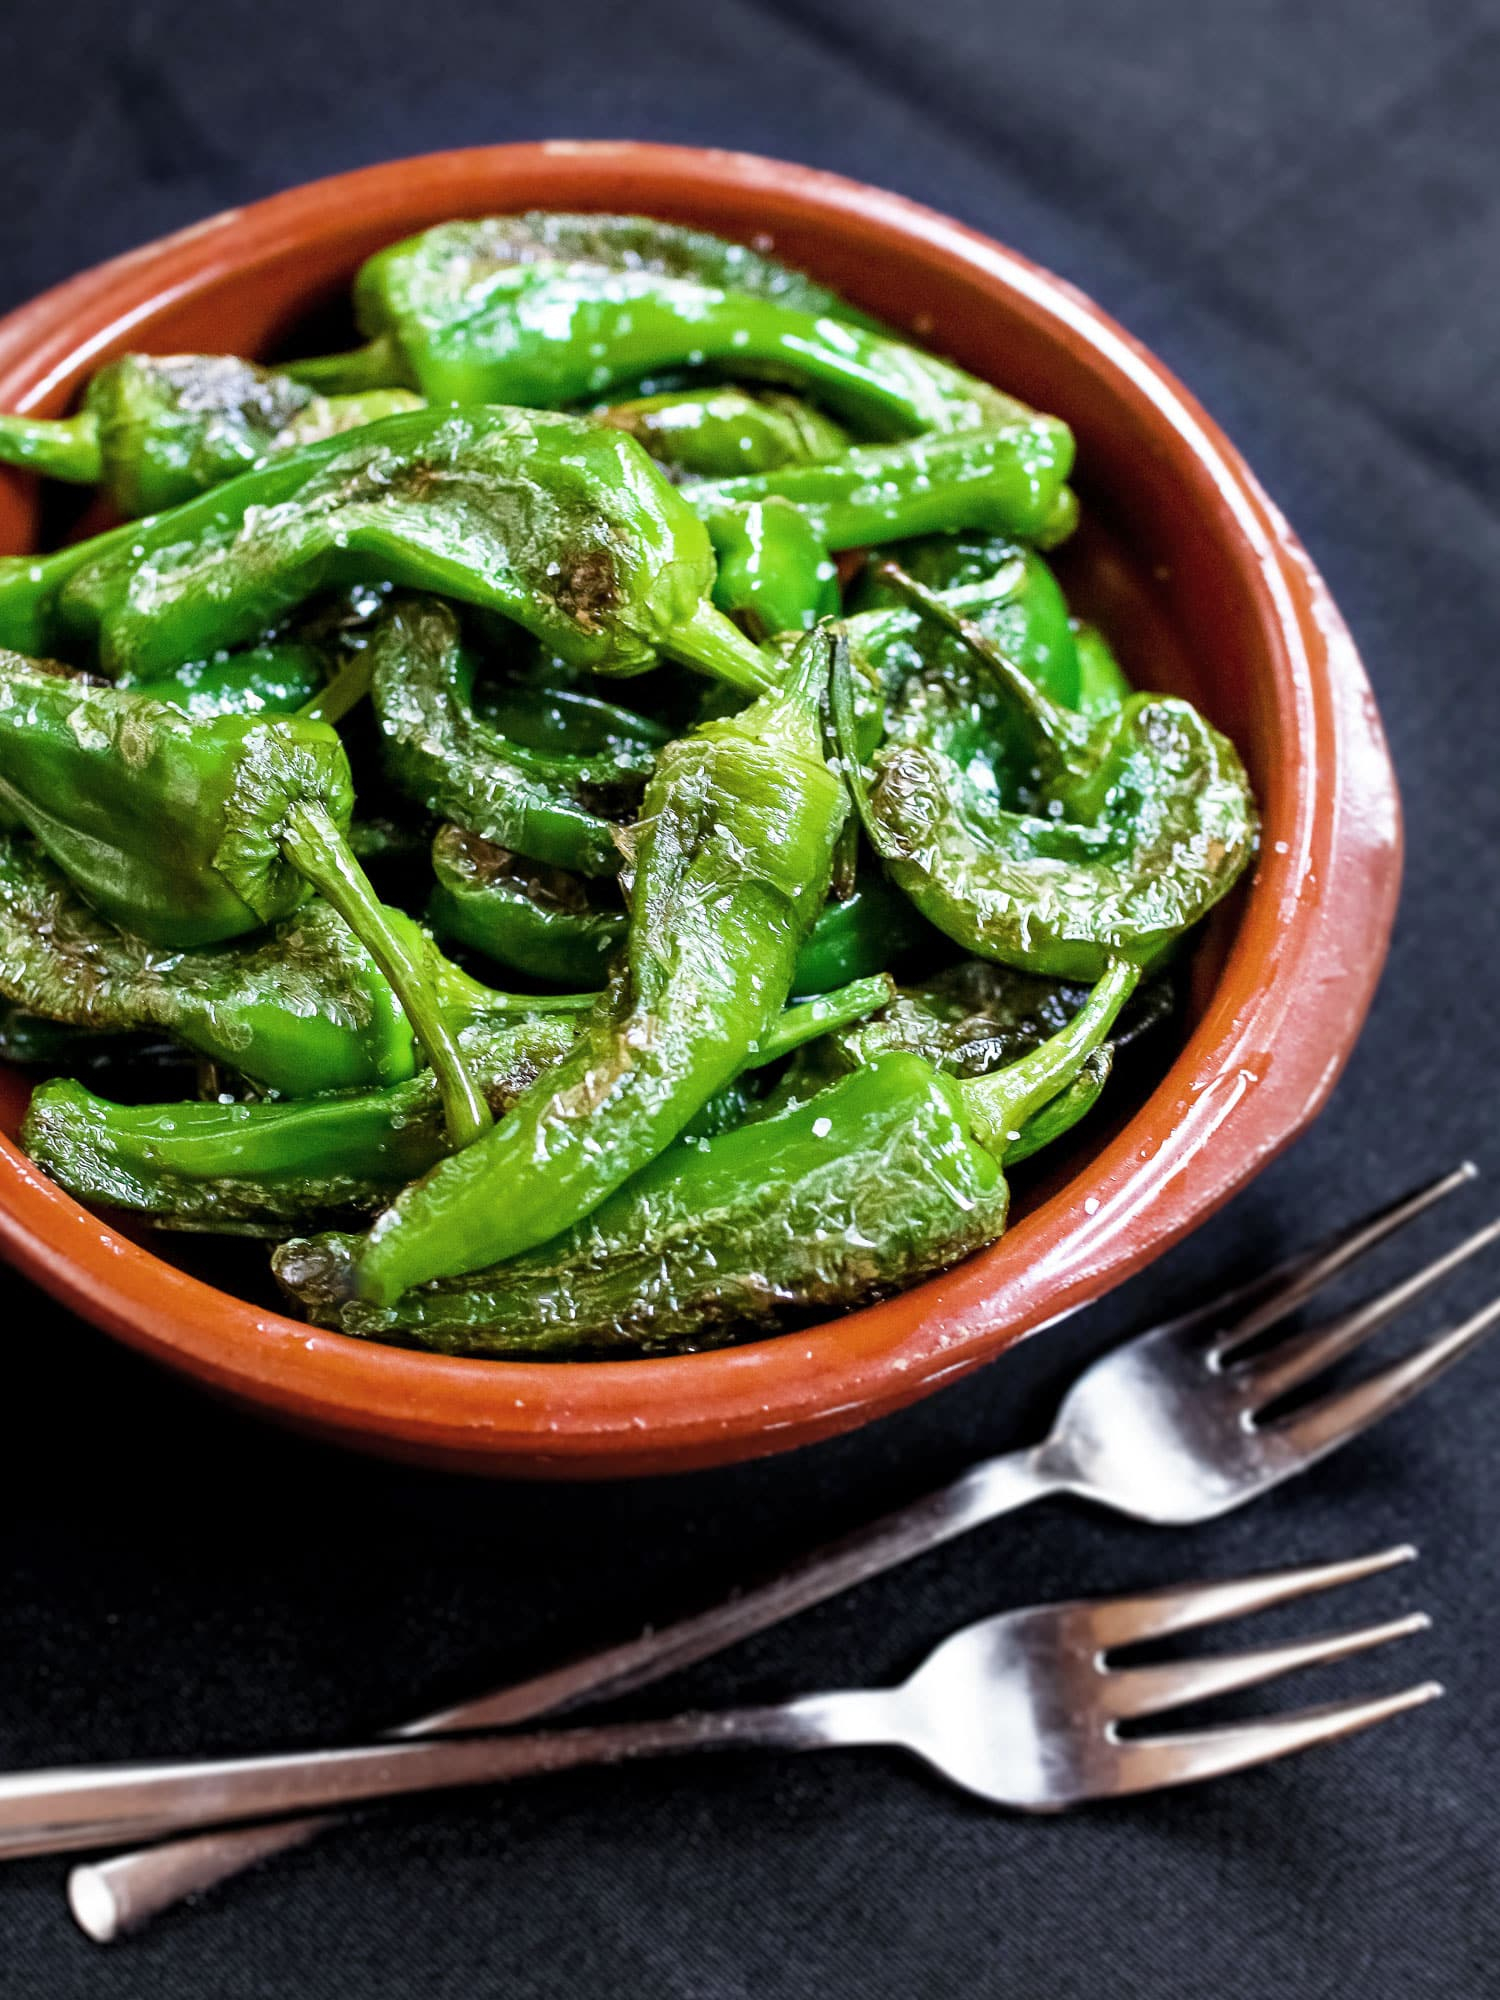 Vegan-friendly Spanish tapas style green pepper (pimientos de padrón)